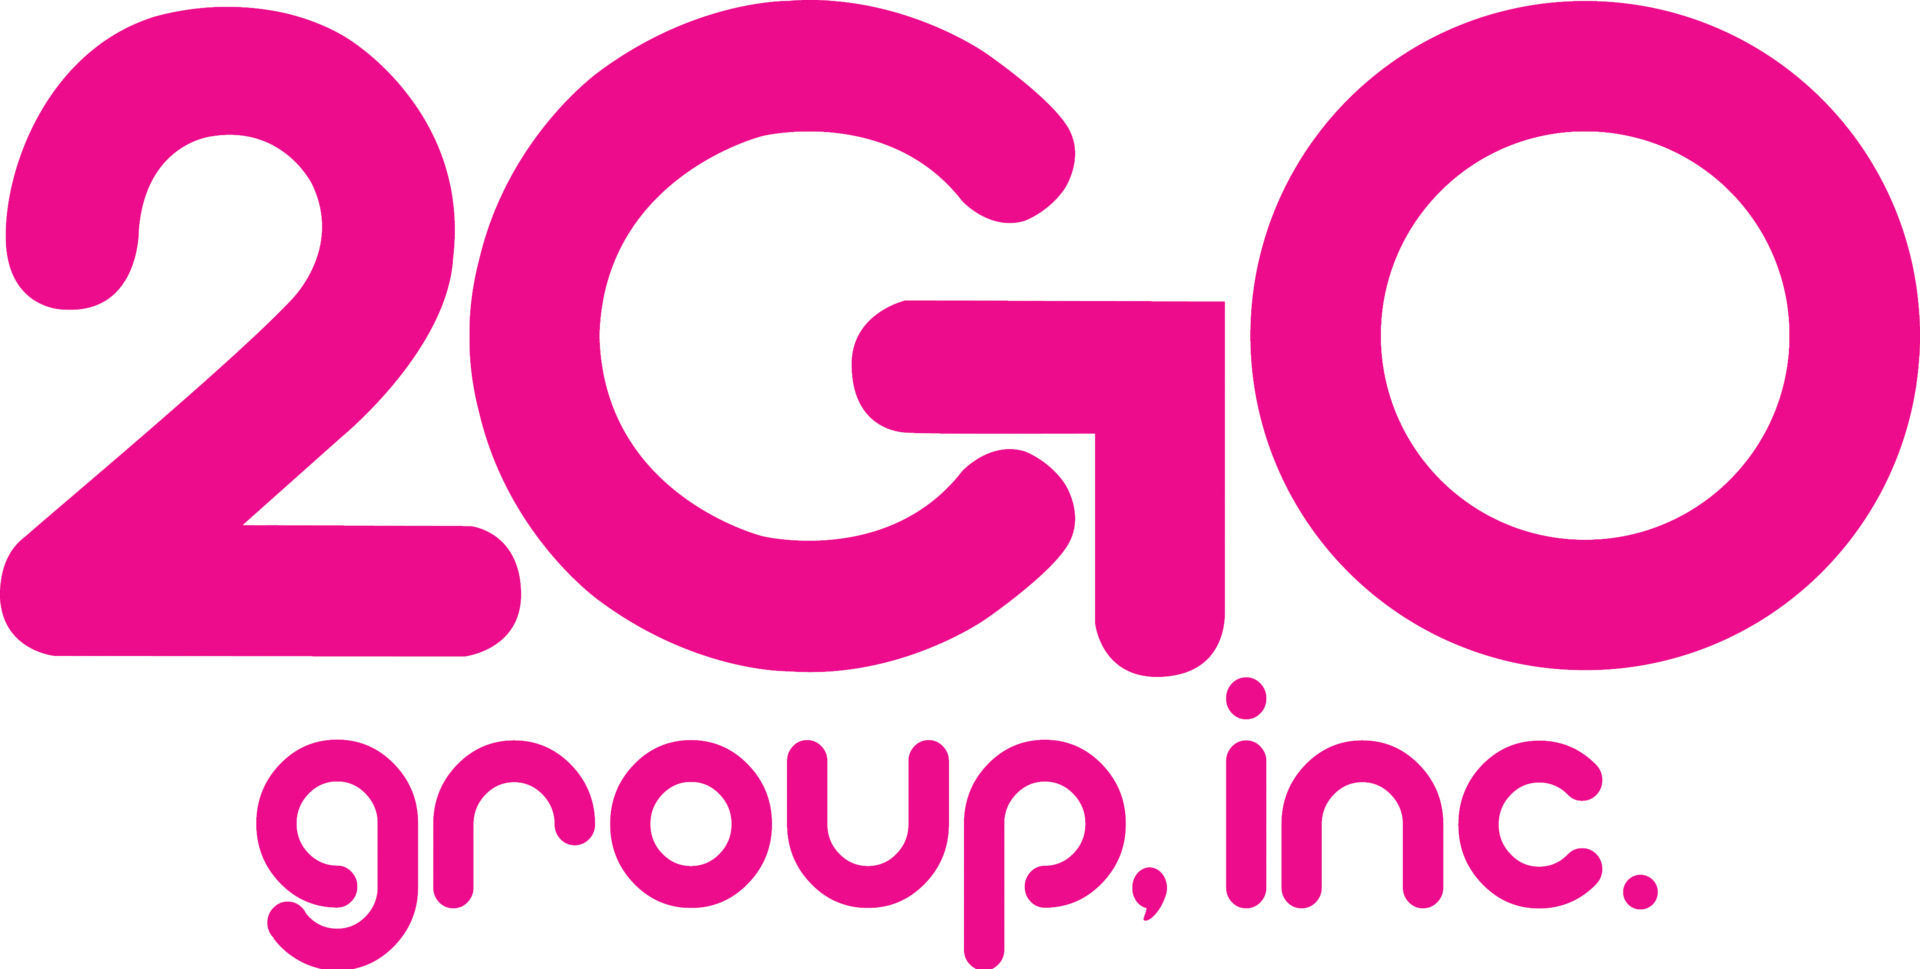 Two Logo 2GO Group - Wik...